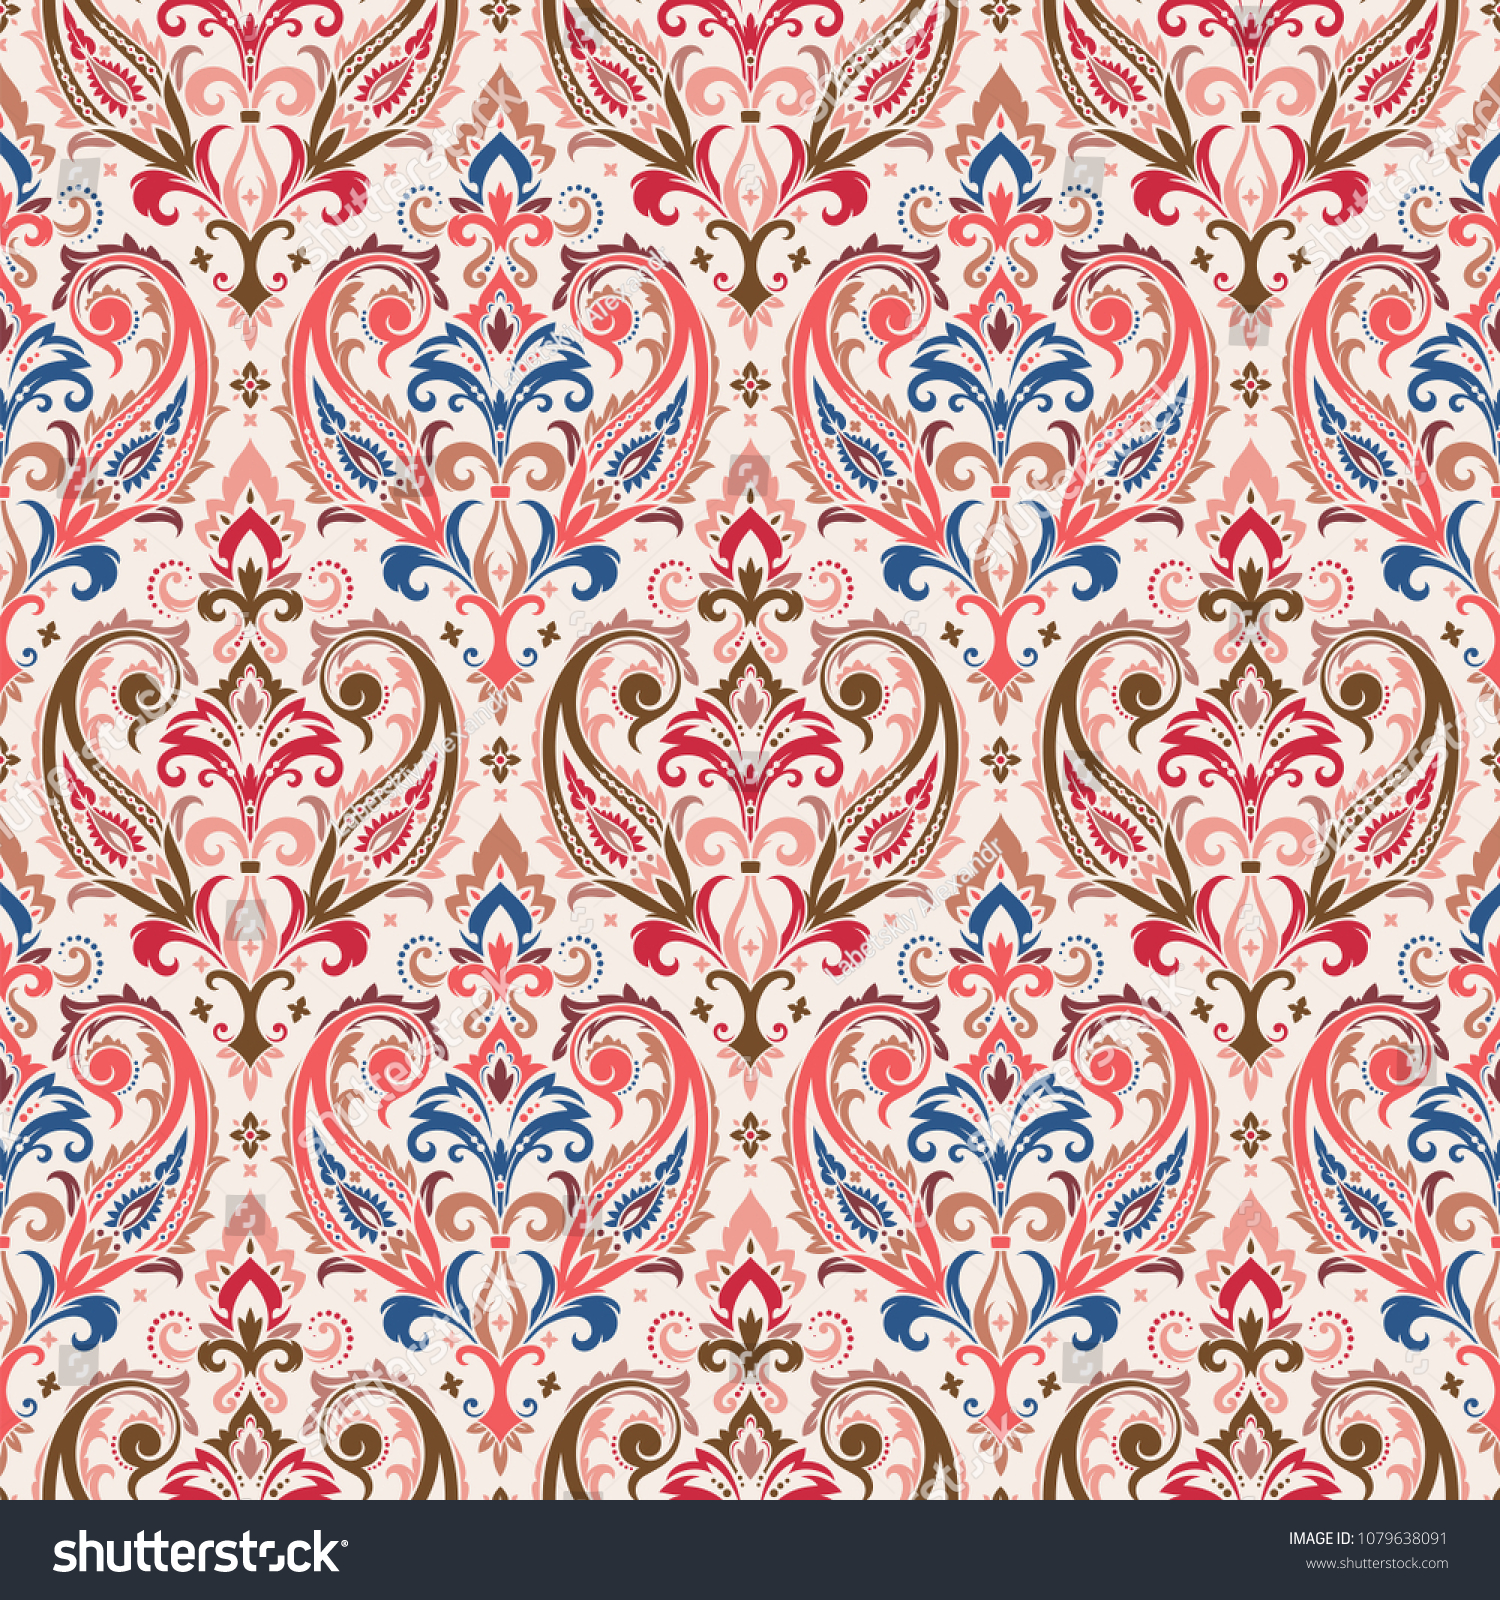 Seamless Pattern Based On Traditional Asian Elements Paisley Boho Vintage